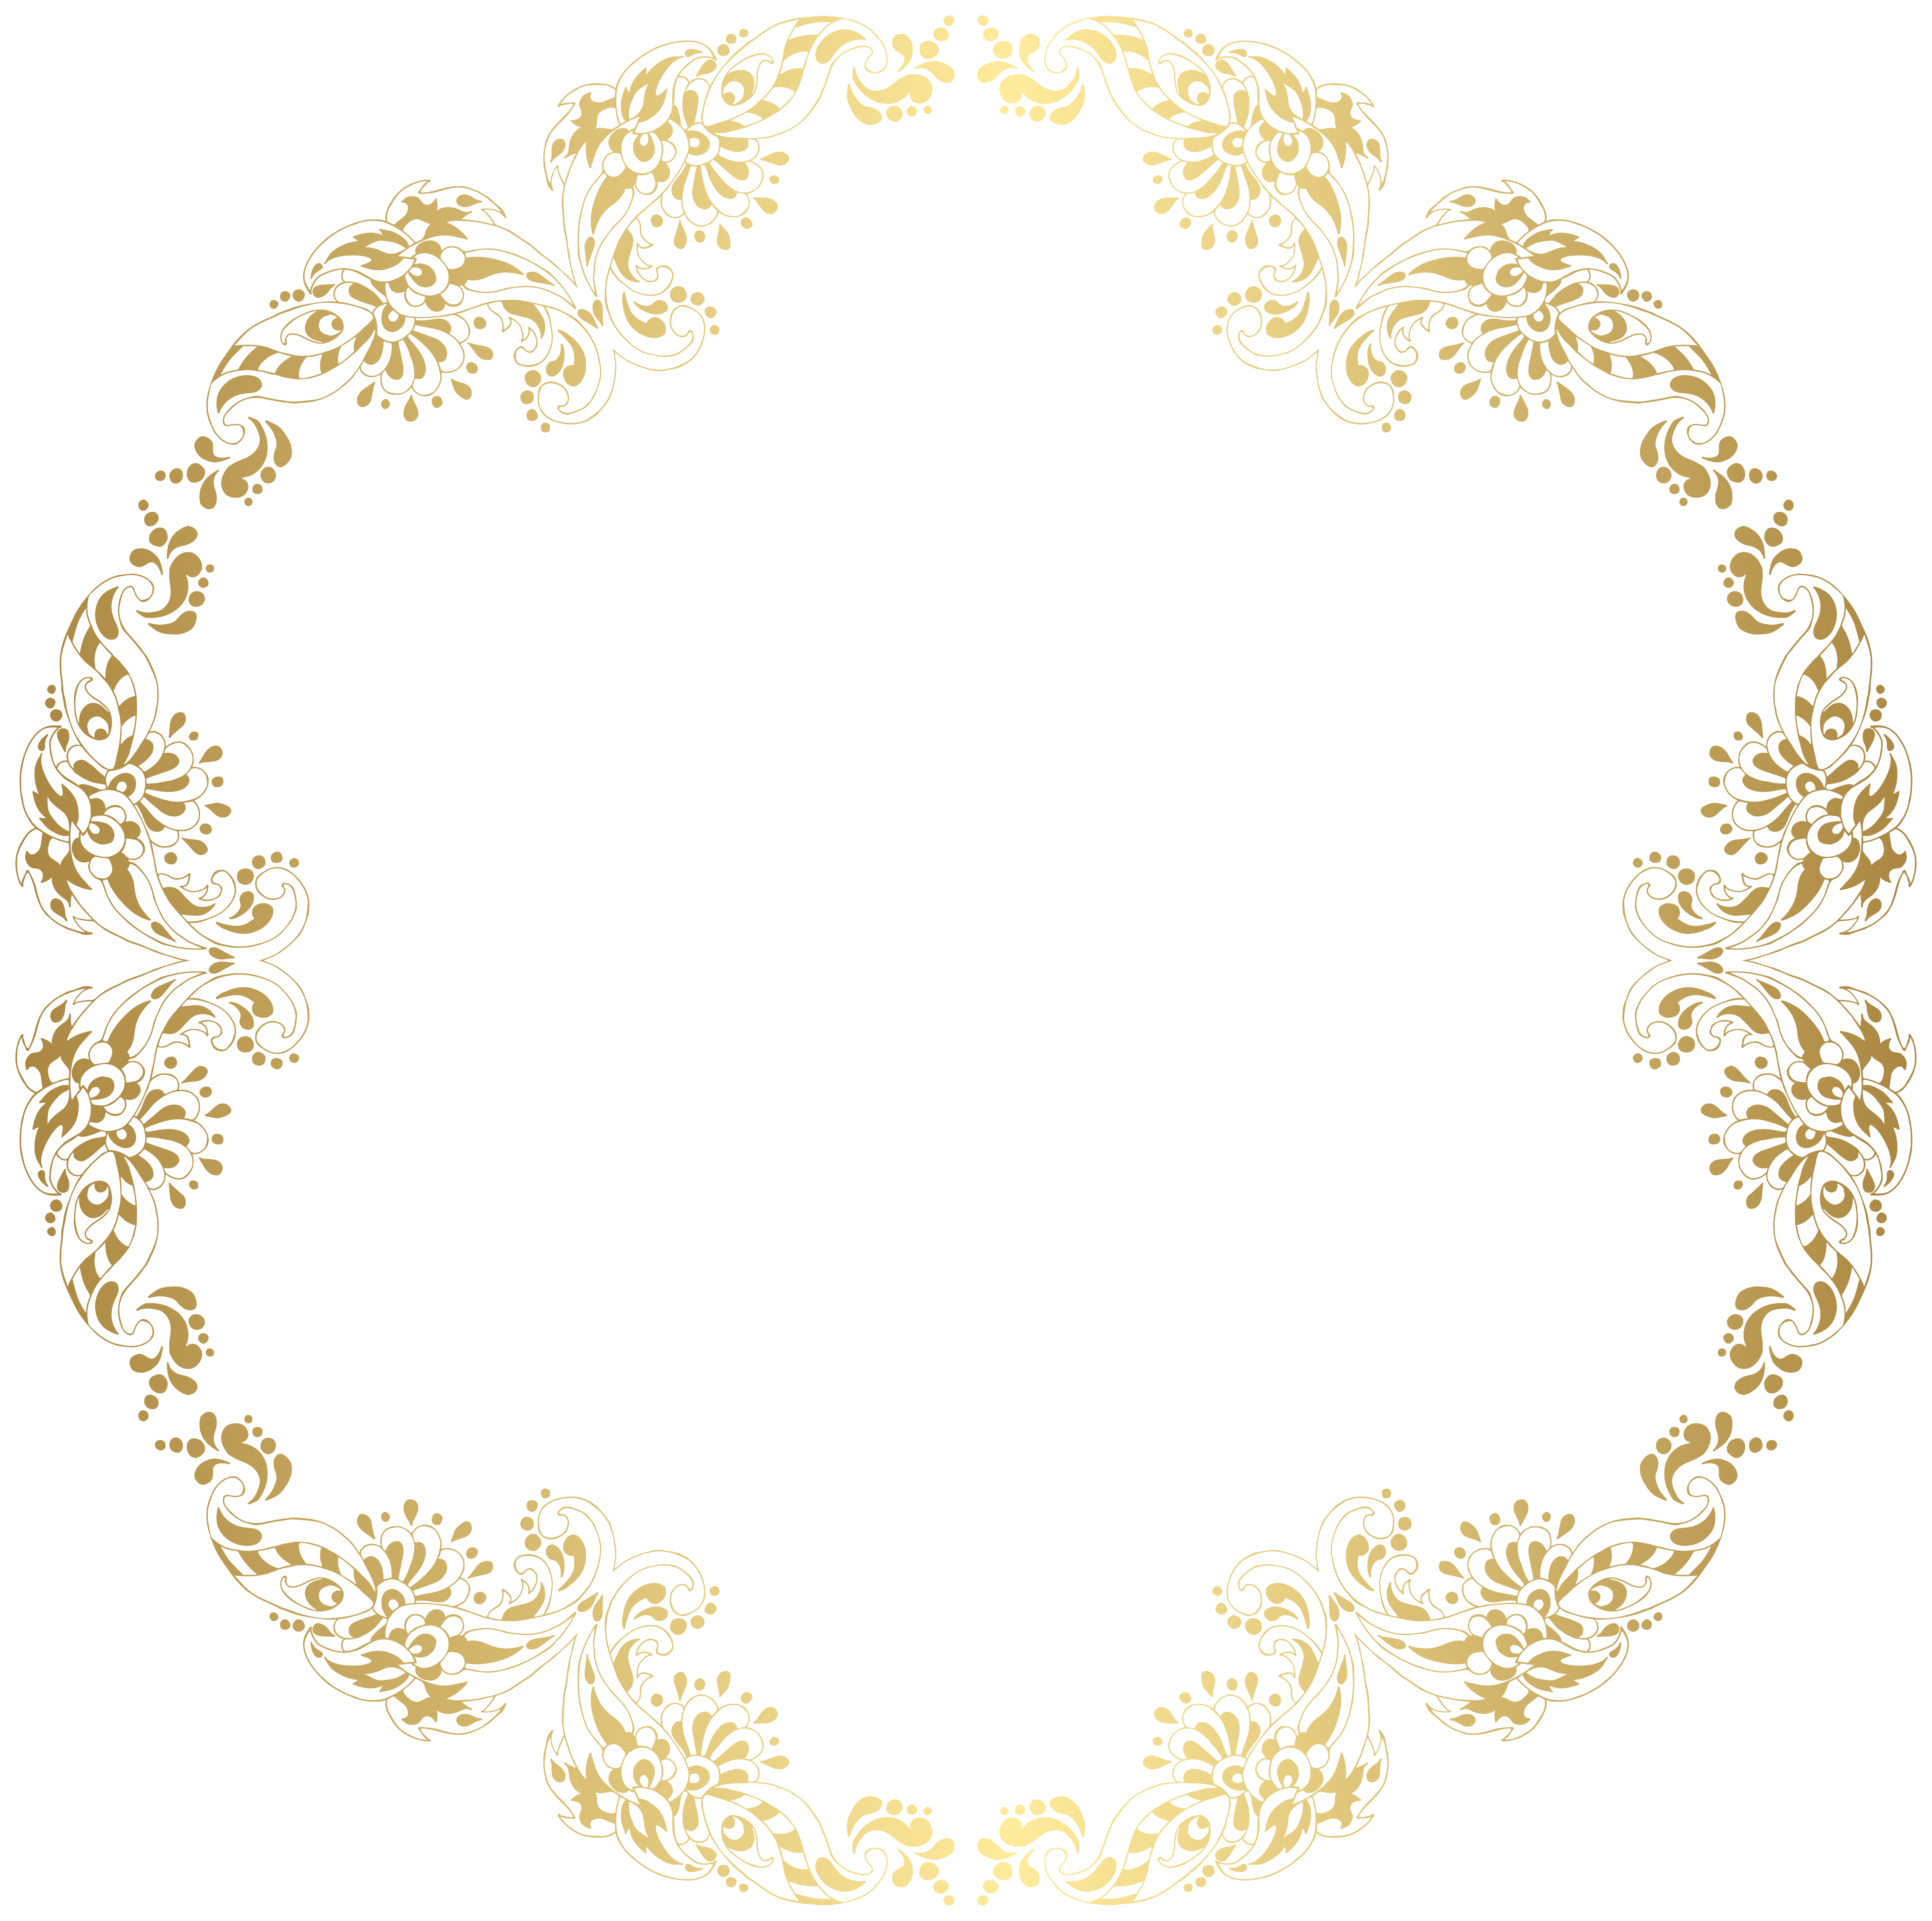 Floral gold round png. Fashion clipart border